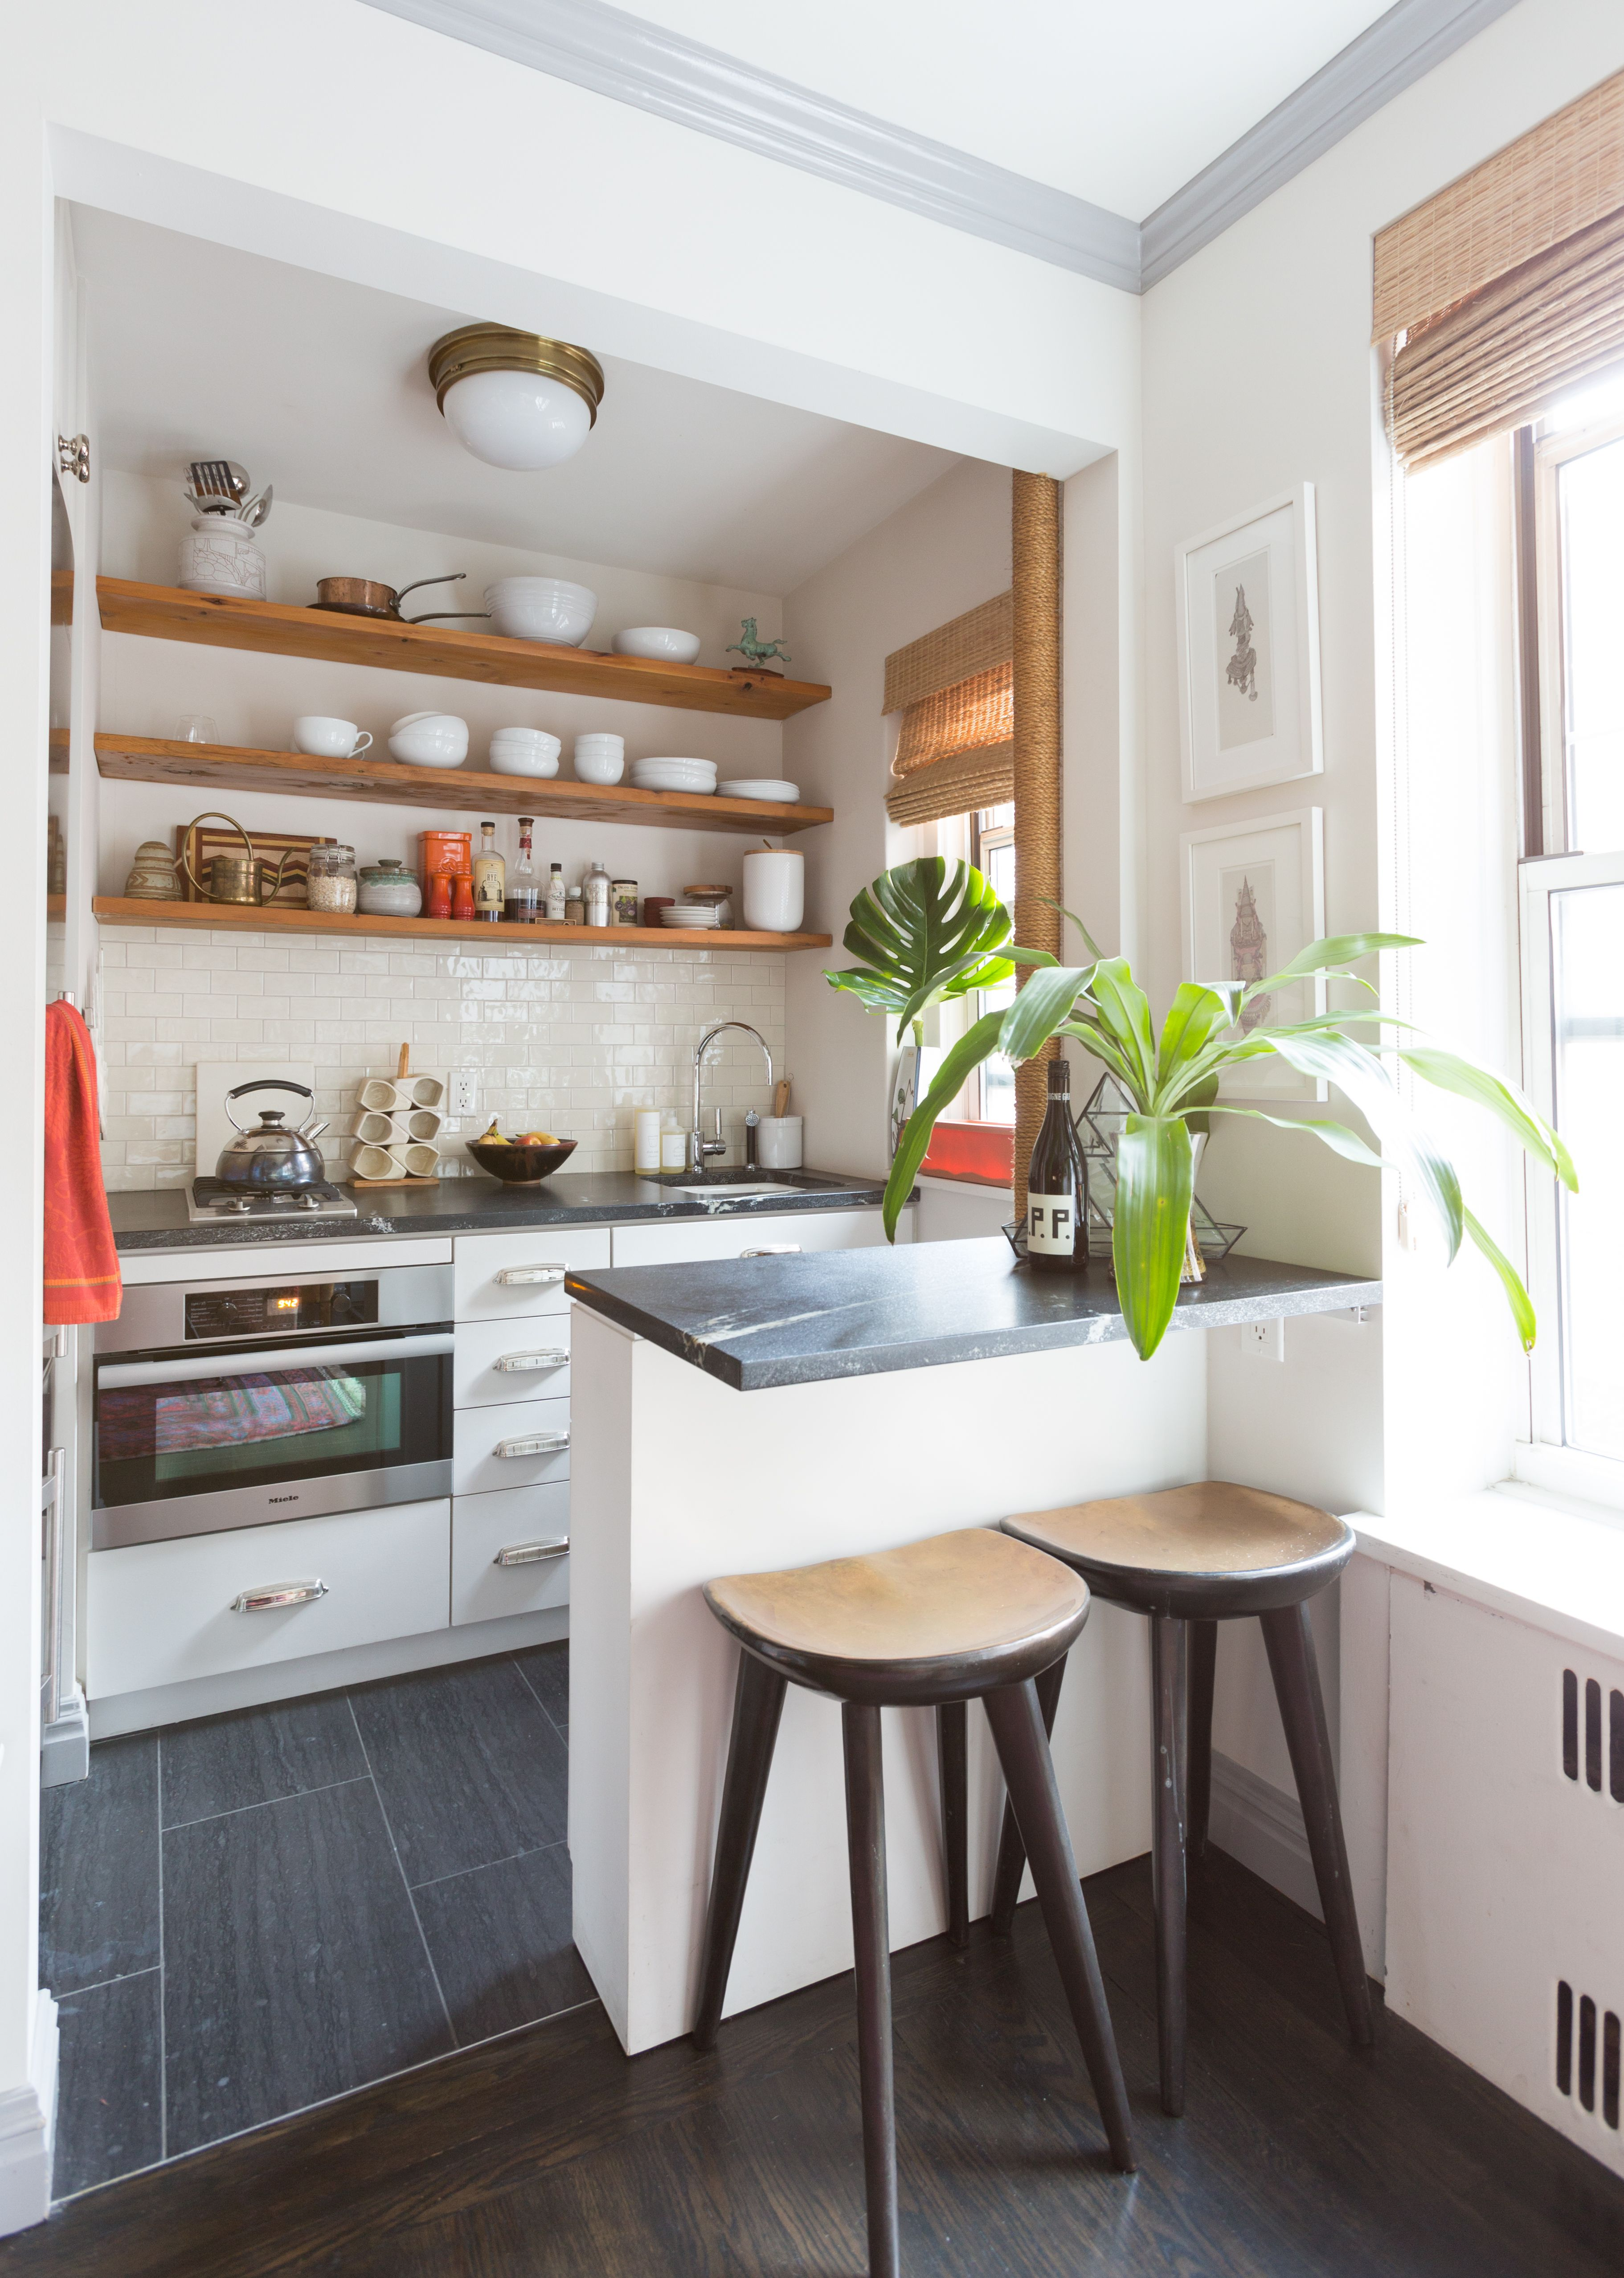 25 White Kitchens That Are Anything But Bland Basic Kitchen